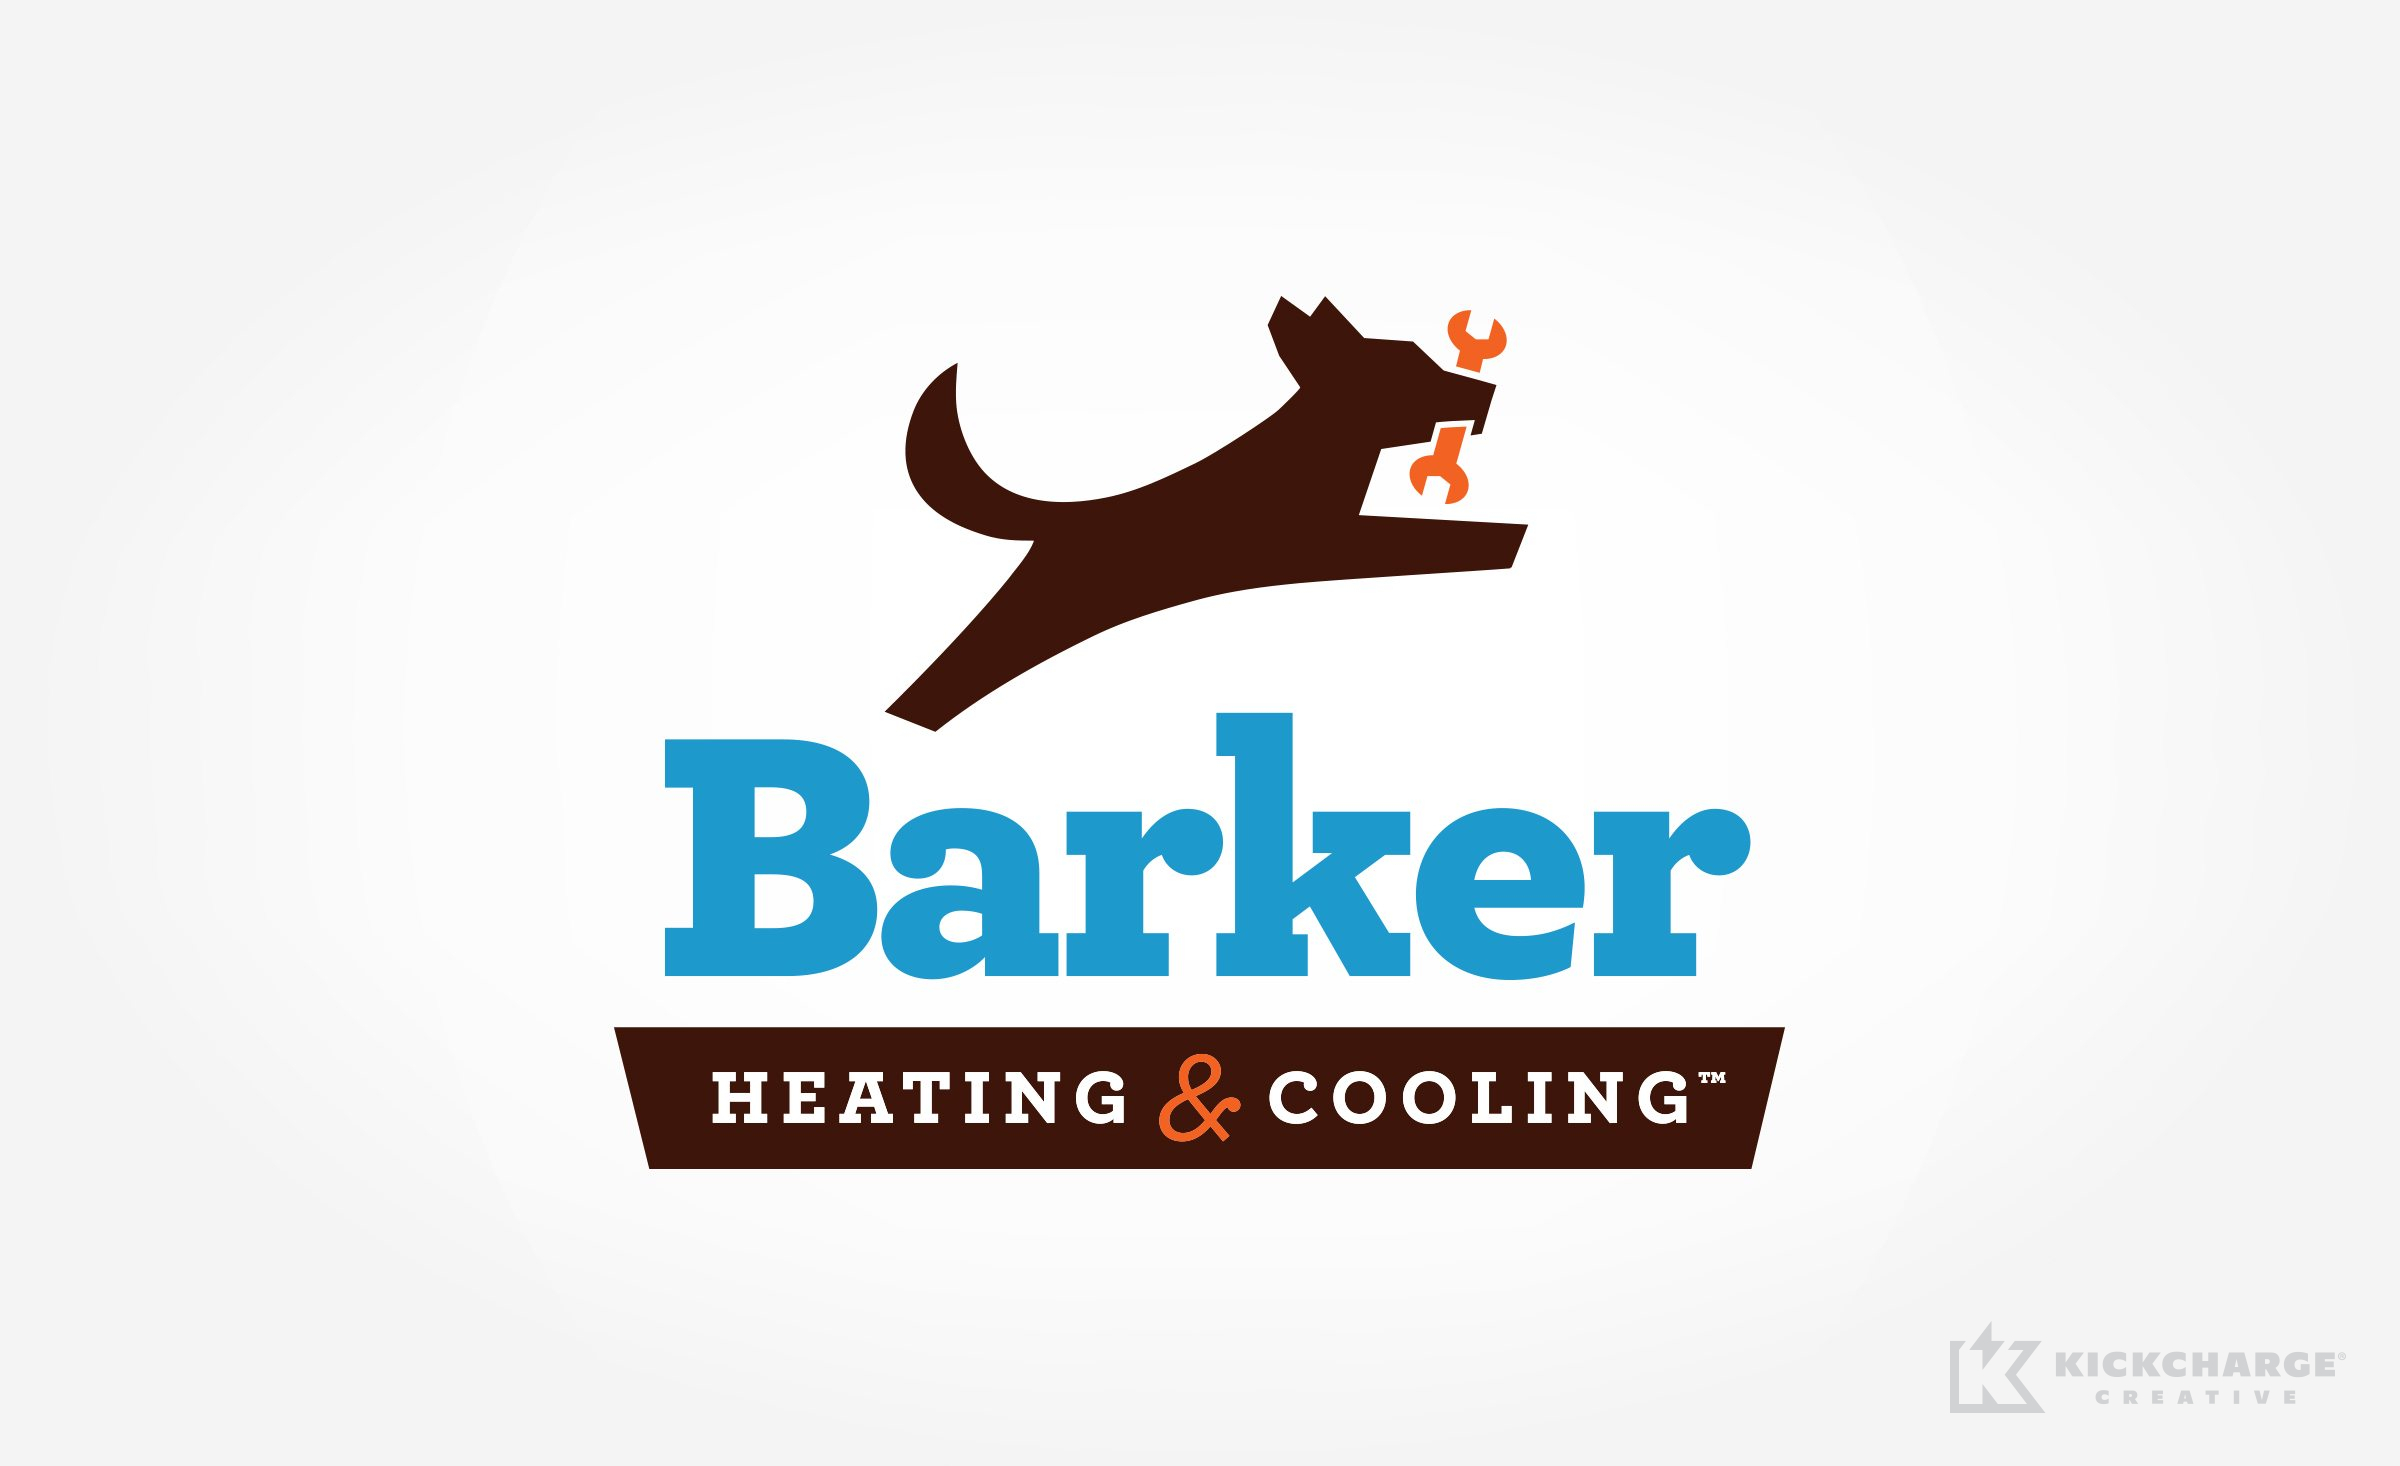 Barker Heating & Cooling